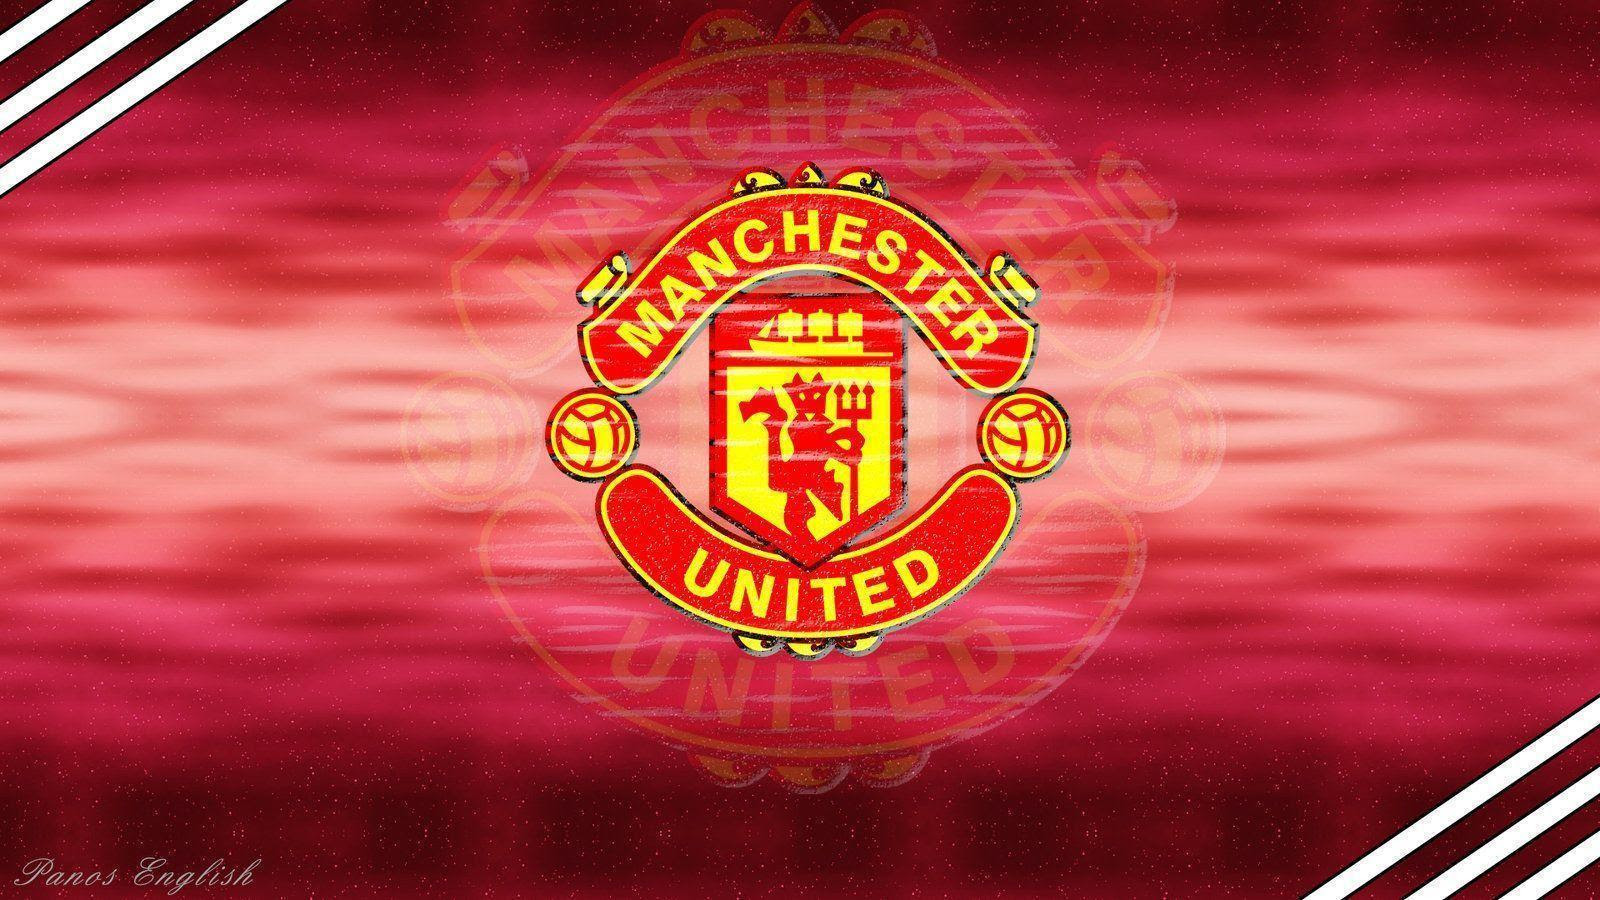 Manchester United Wallpapers Hd 2017 Wallpaper Cave